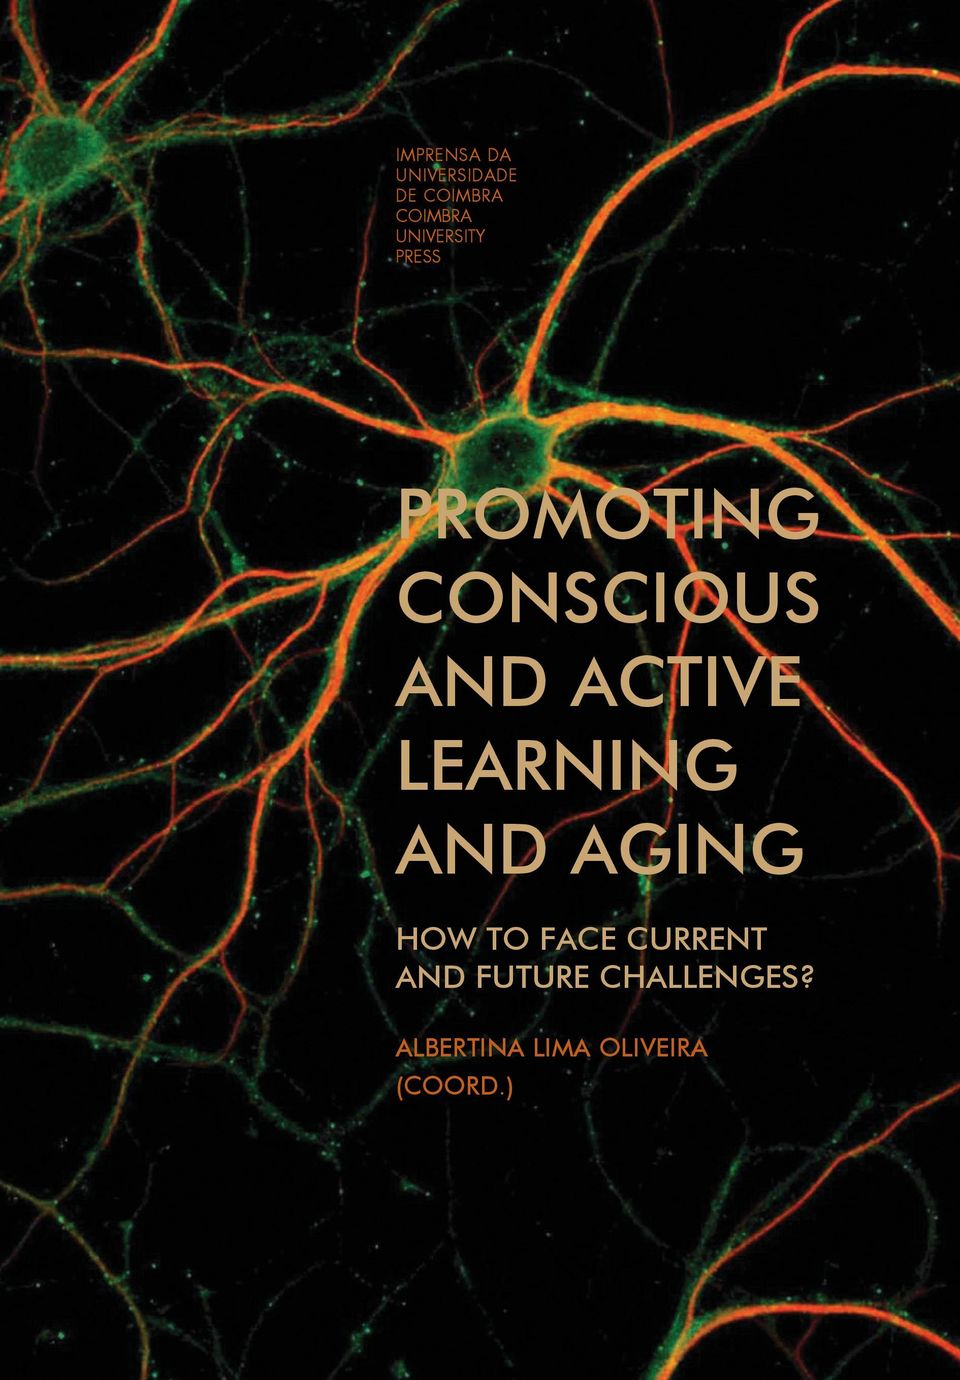 ACTIVE LEARNING AND AGING HOW TO FACE CURRENT